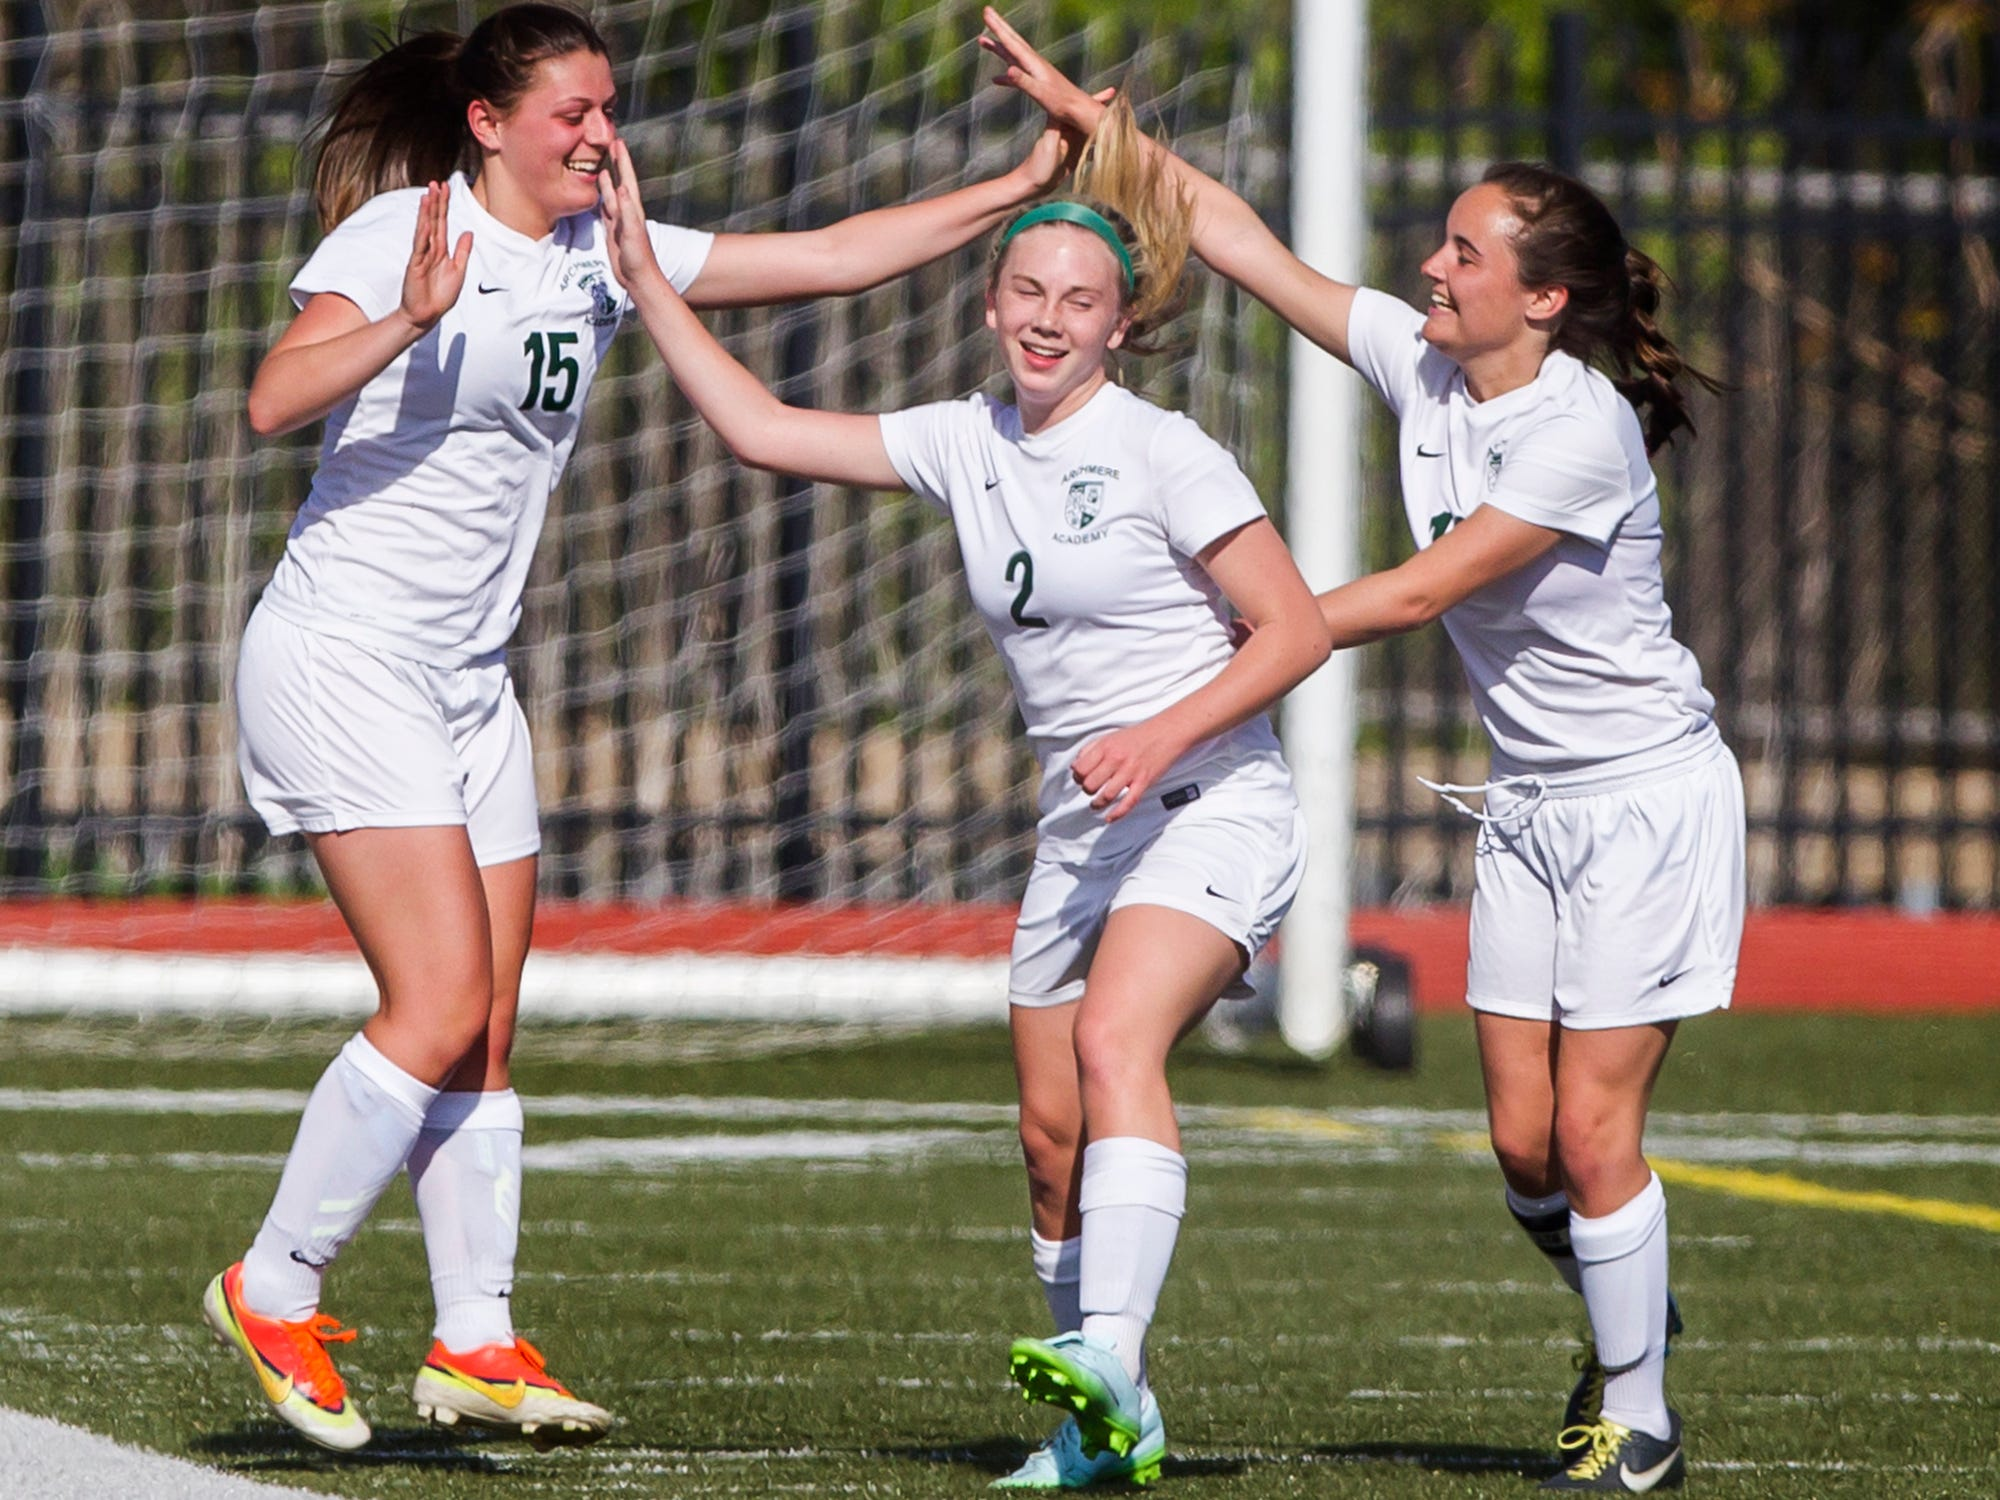 Archmere's Madeline Law (left), Madison Love (right) and Madelyn Heck (center) celebrate after a corner kick by Law deflected off a St. Mark's player and into the goal. Archmere defeated St. Mark's by a score of 2-1.